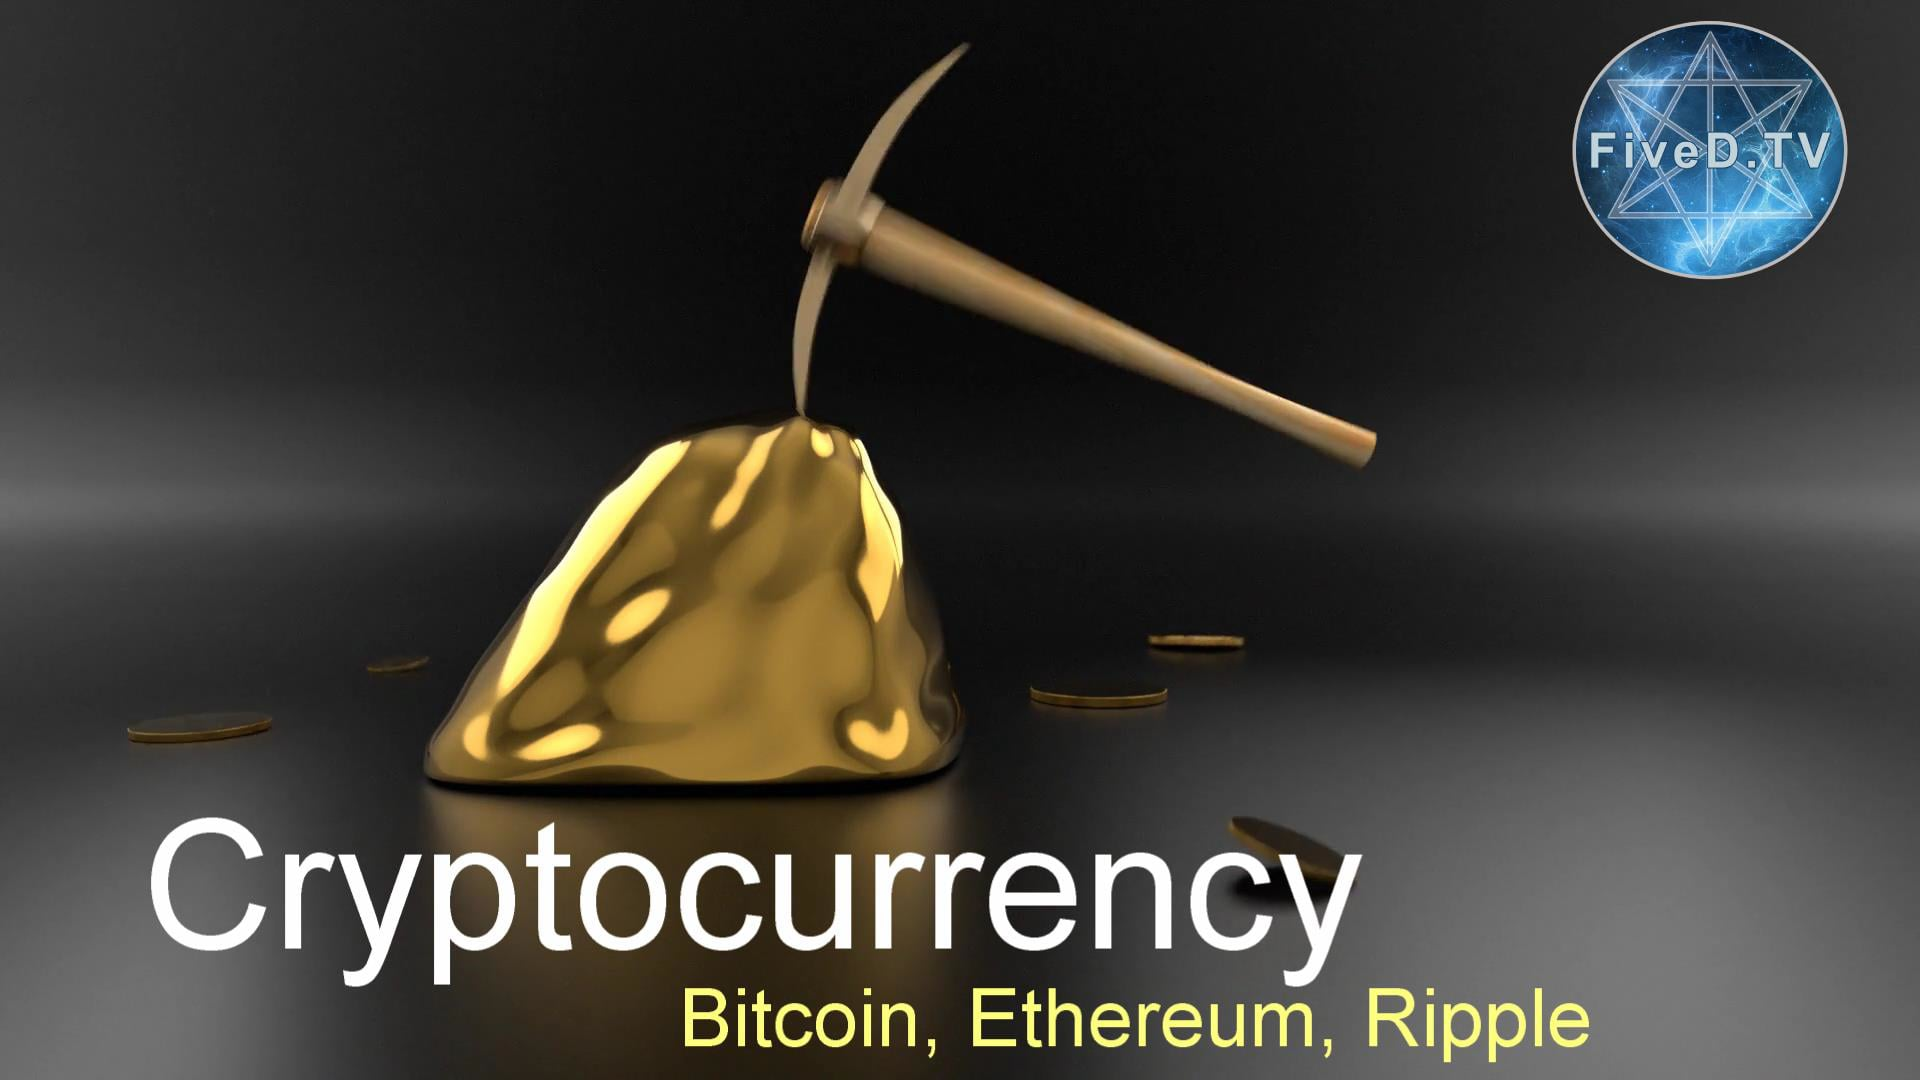 Trailer for Cryptocurrency Episodes on FiveD.TV